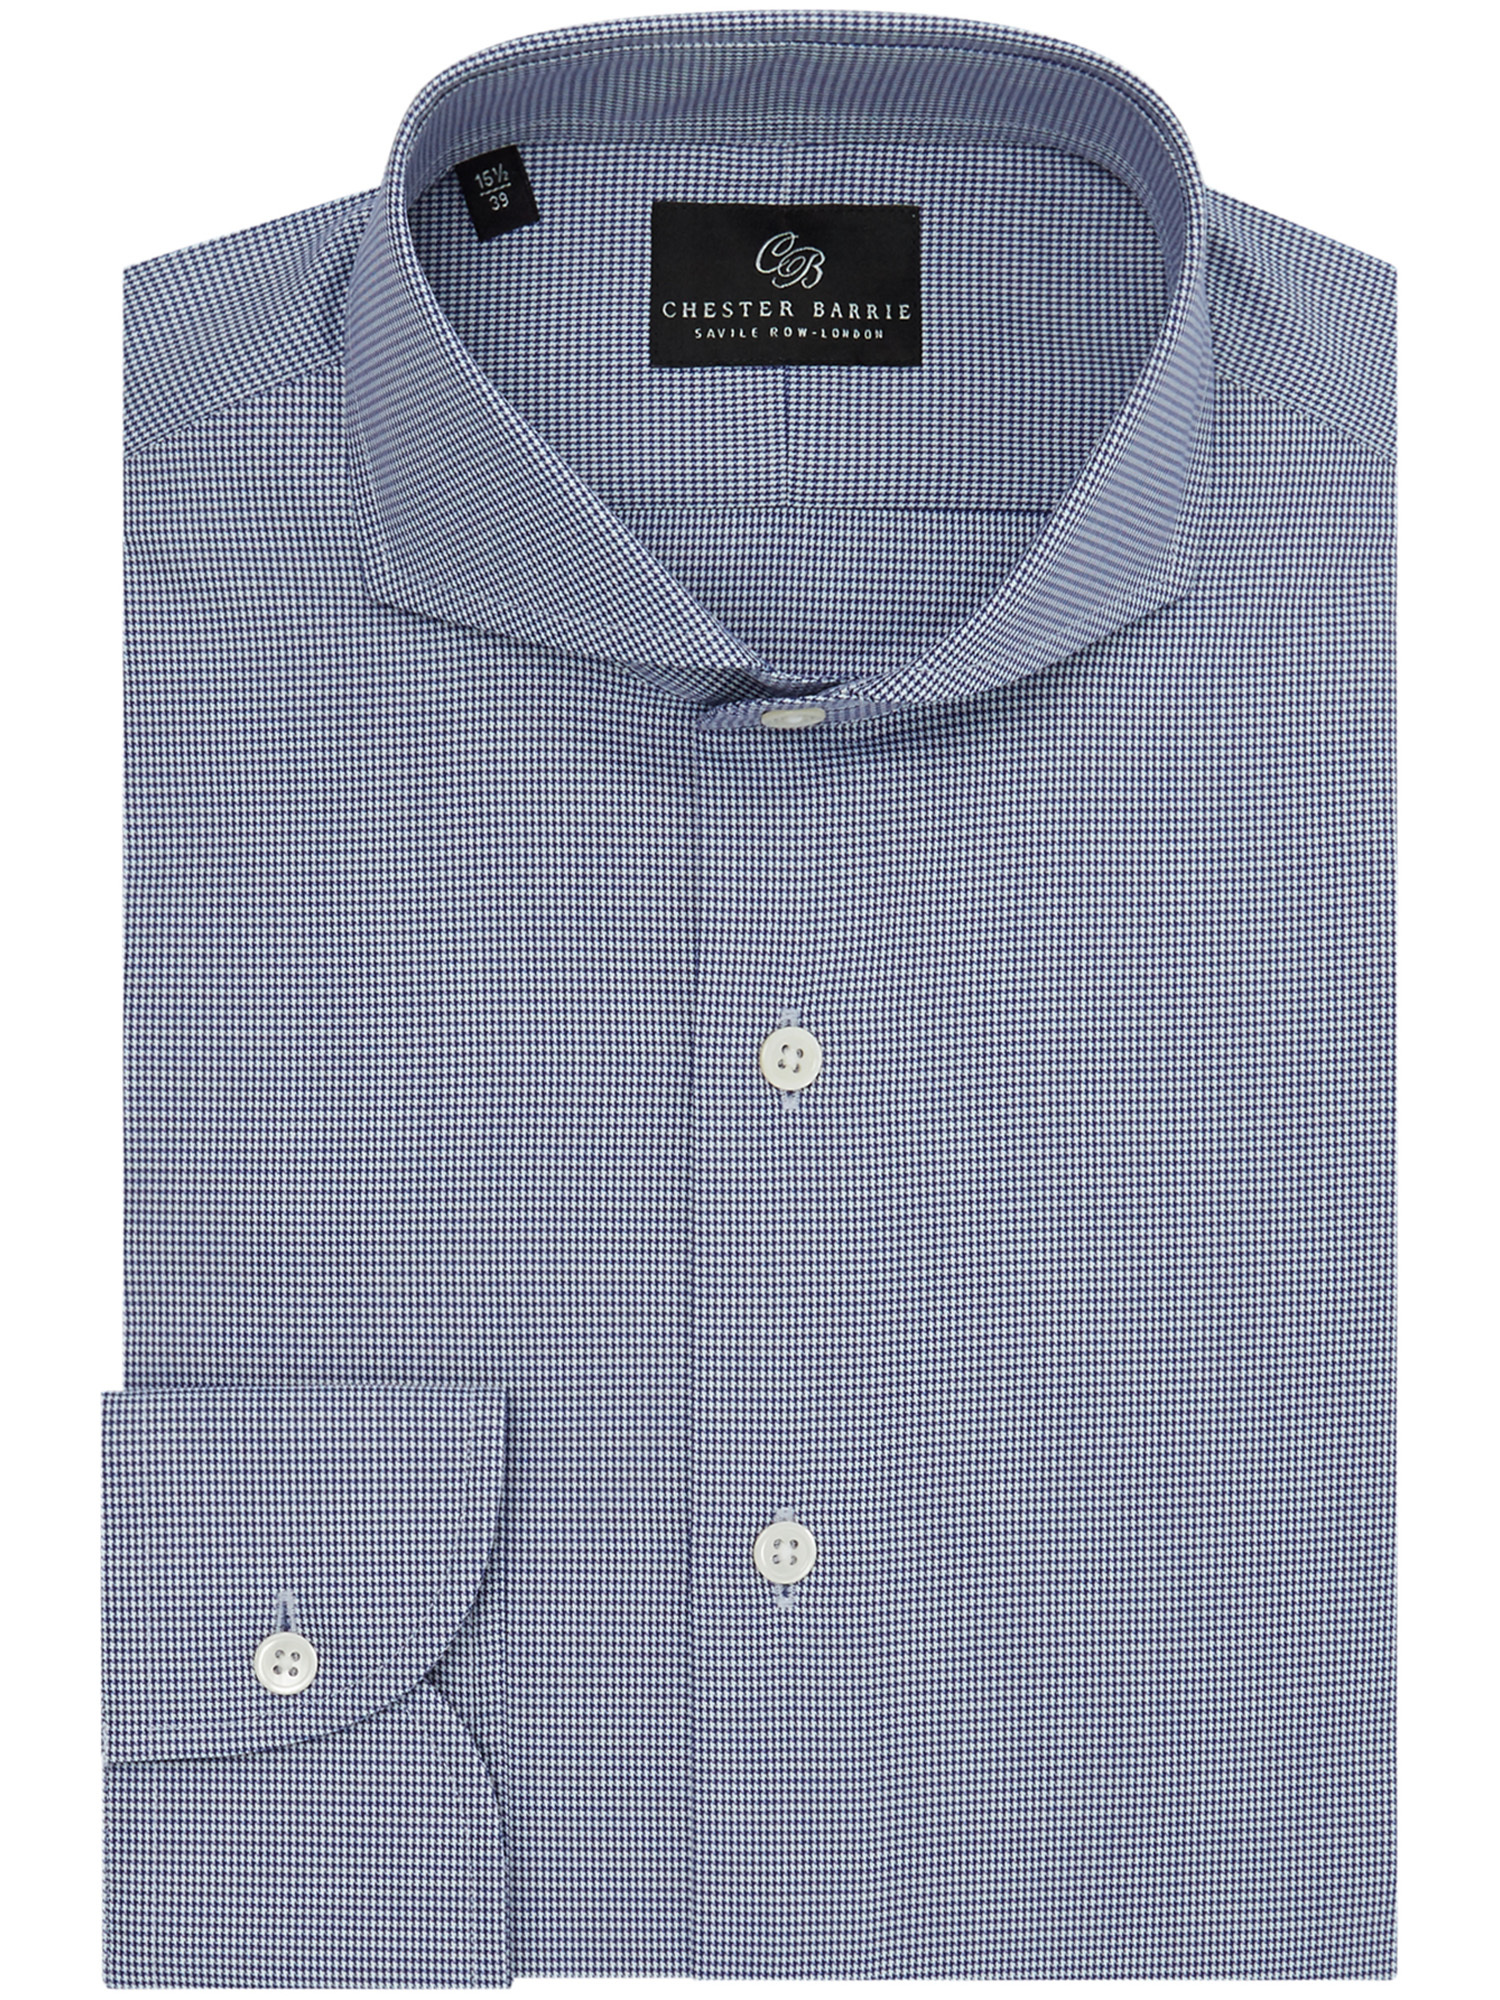 CHESTER BARRIE BLUE HOUNDSTOOTH SHIRT